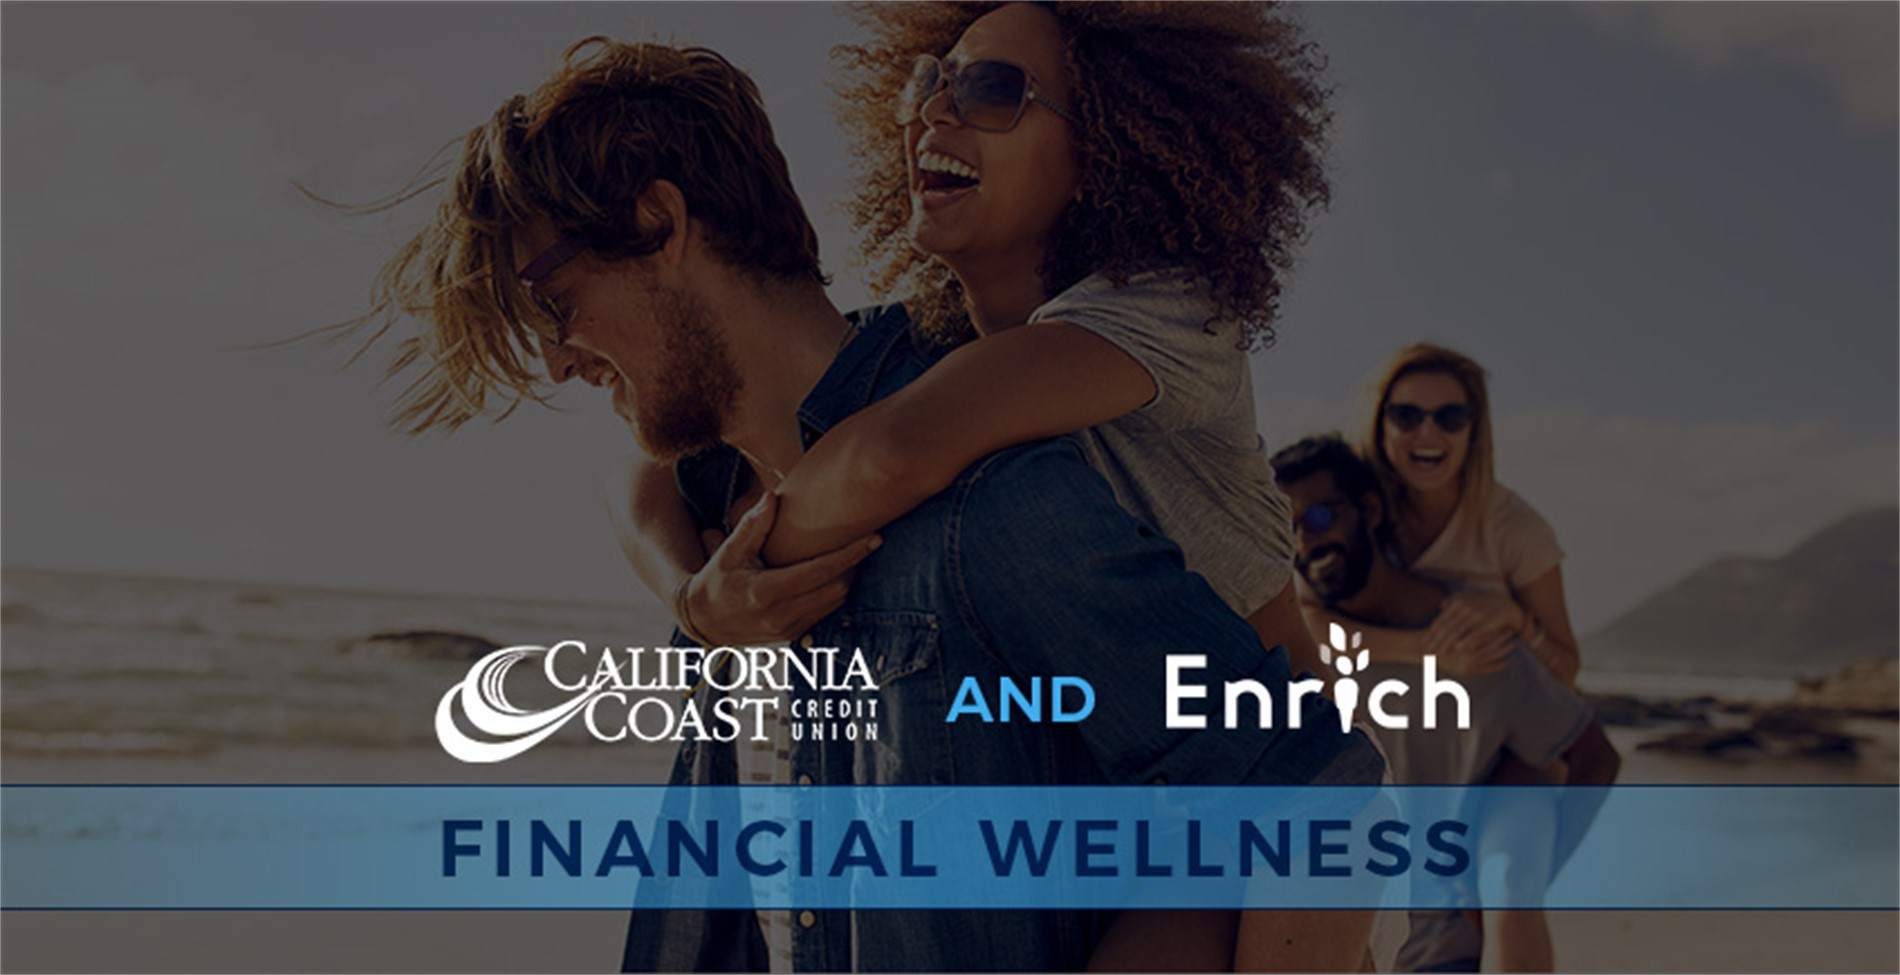 California Coast Credit Union Financial Wellness